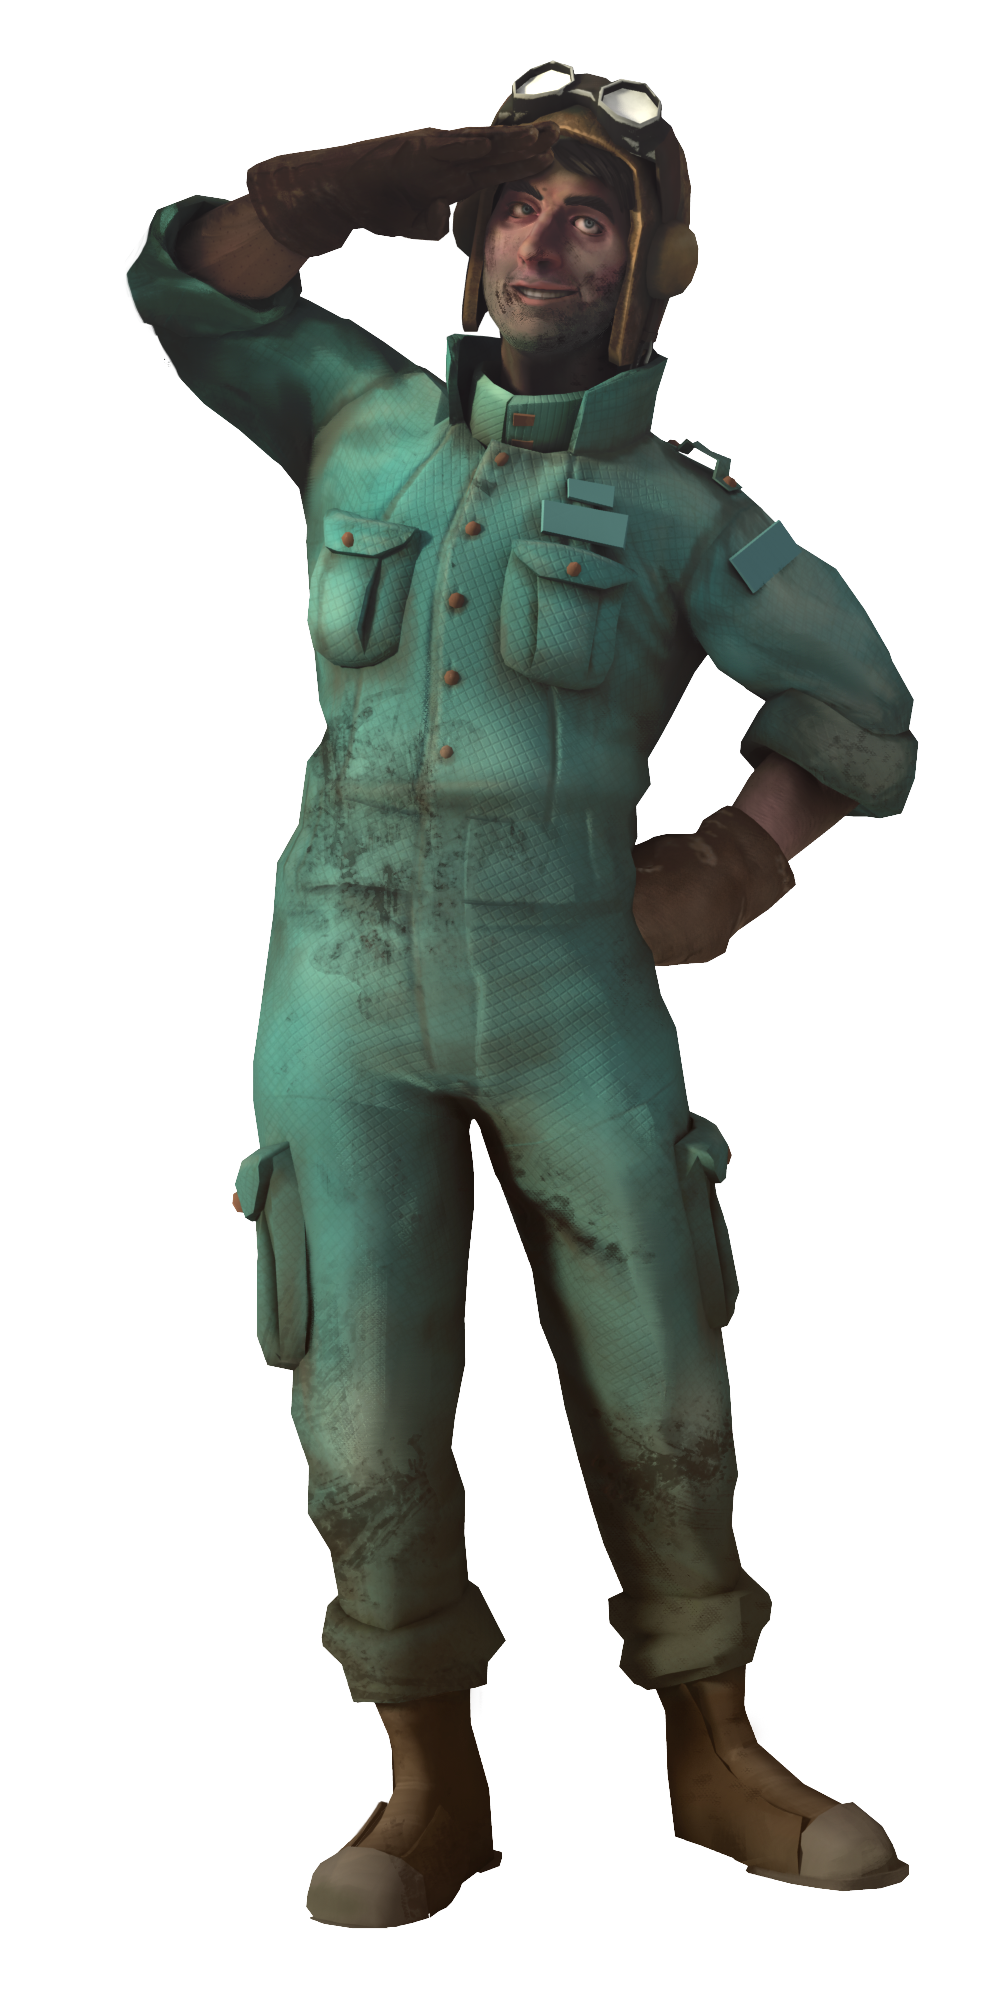 Army guy png. Image character hover junkers